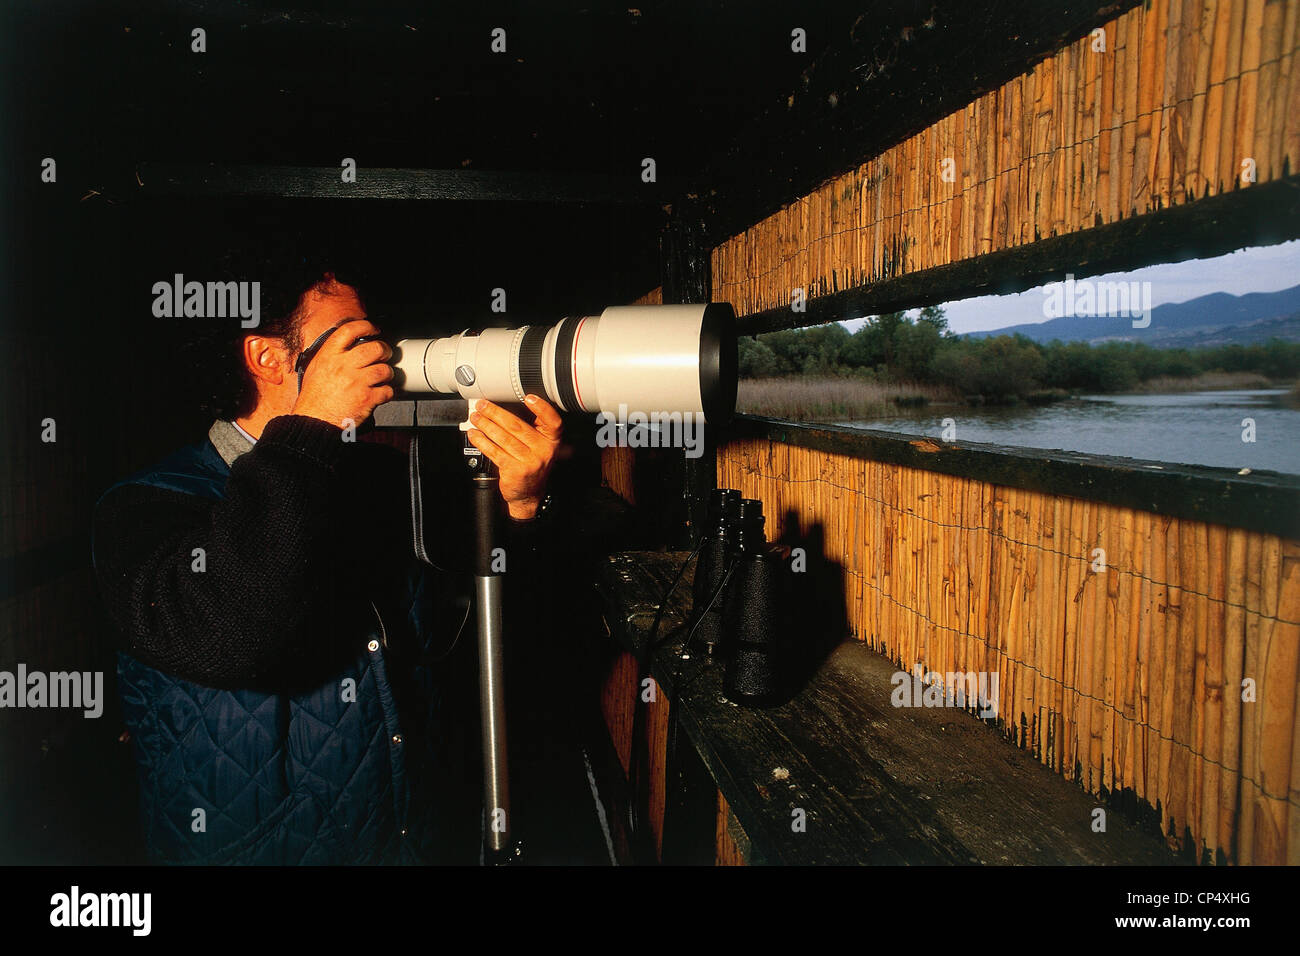 Umbria - Alviano (Tr) - WWF - Bird watching from a hide - Stock Image